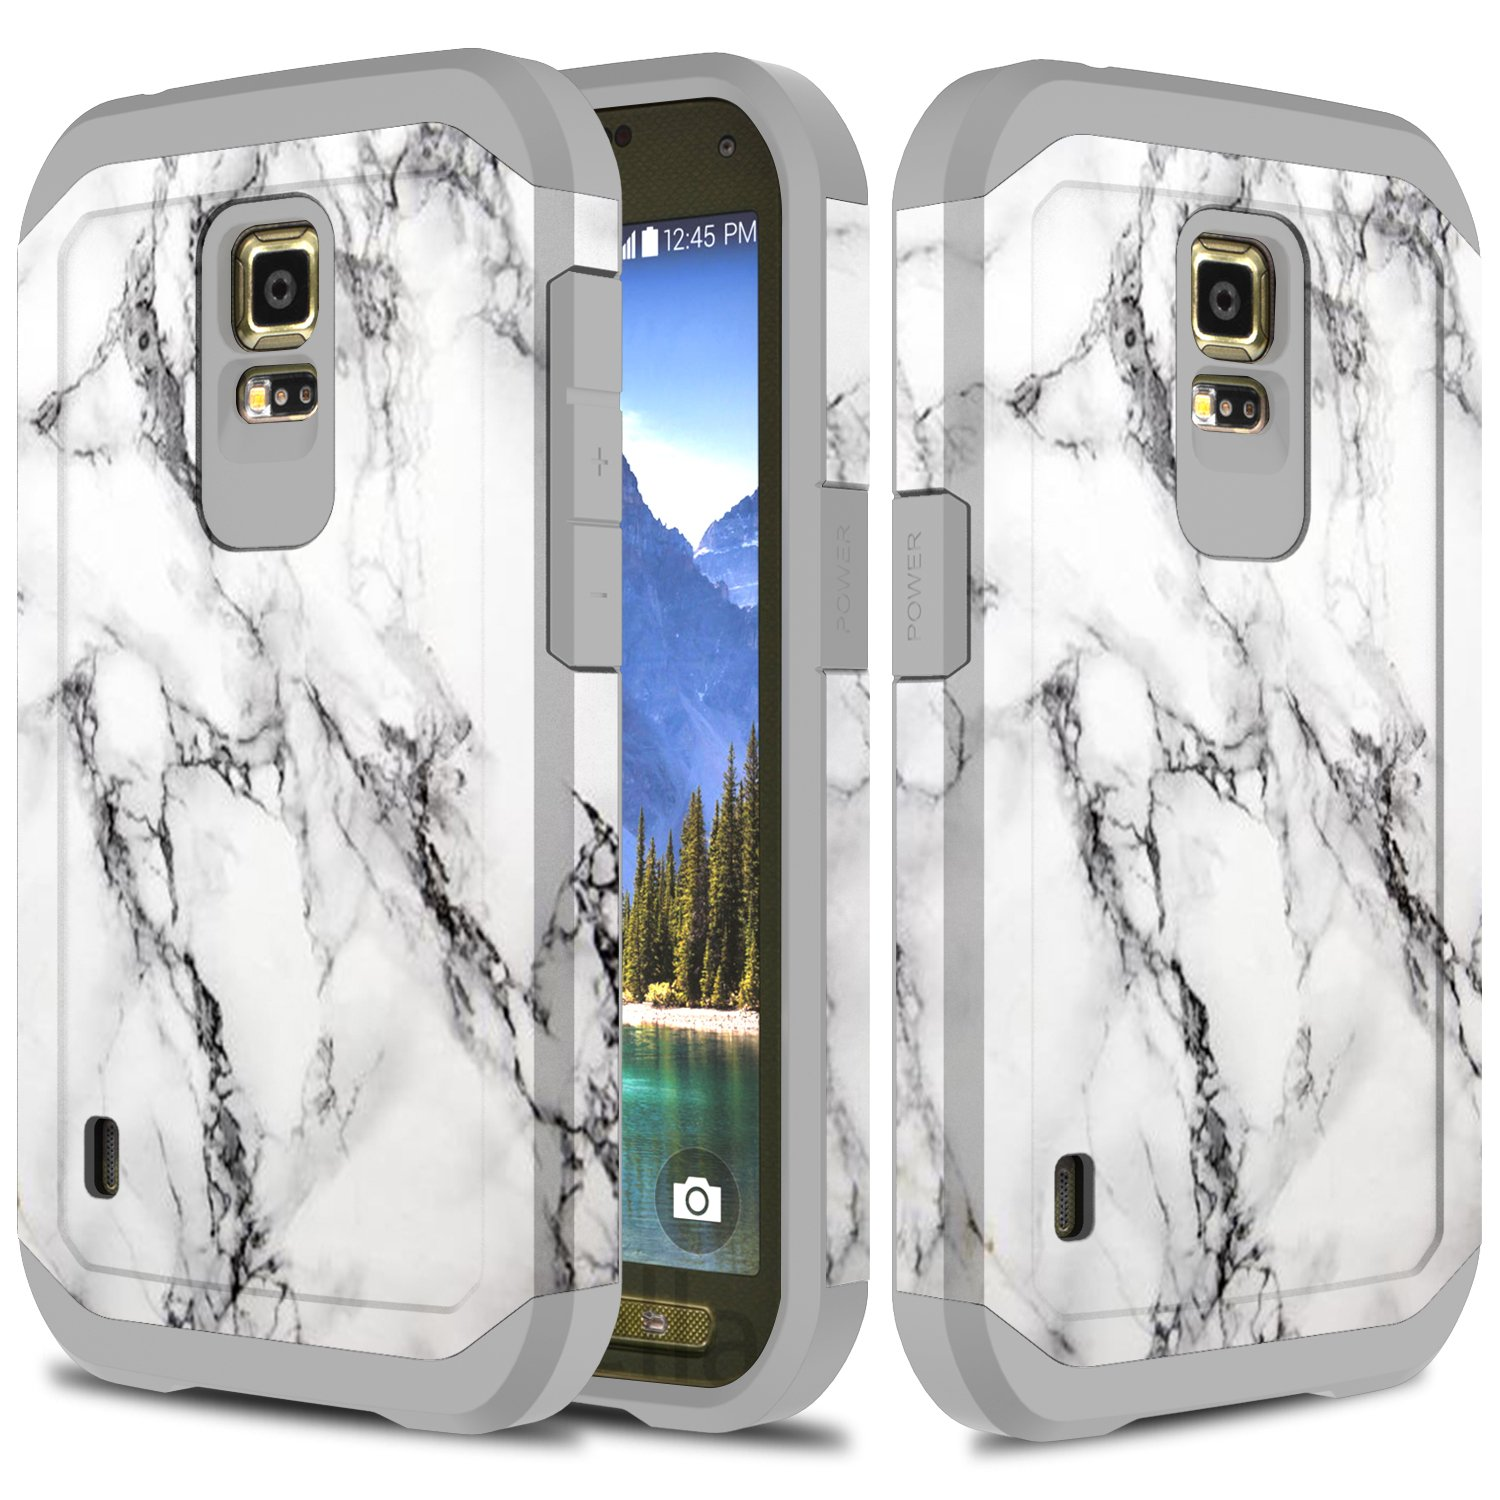 half off af1b2 924b9 Galaxy S5 Active Case, TownShop Marble Pattern Design Hard Impact Dual  Layer Shockproof Bumper Case for Samsung Galaxy S5 Active (G870A)